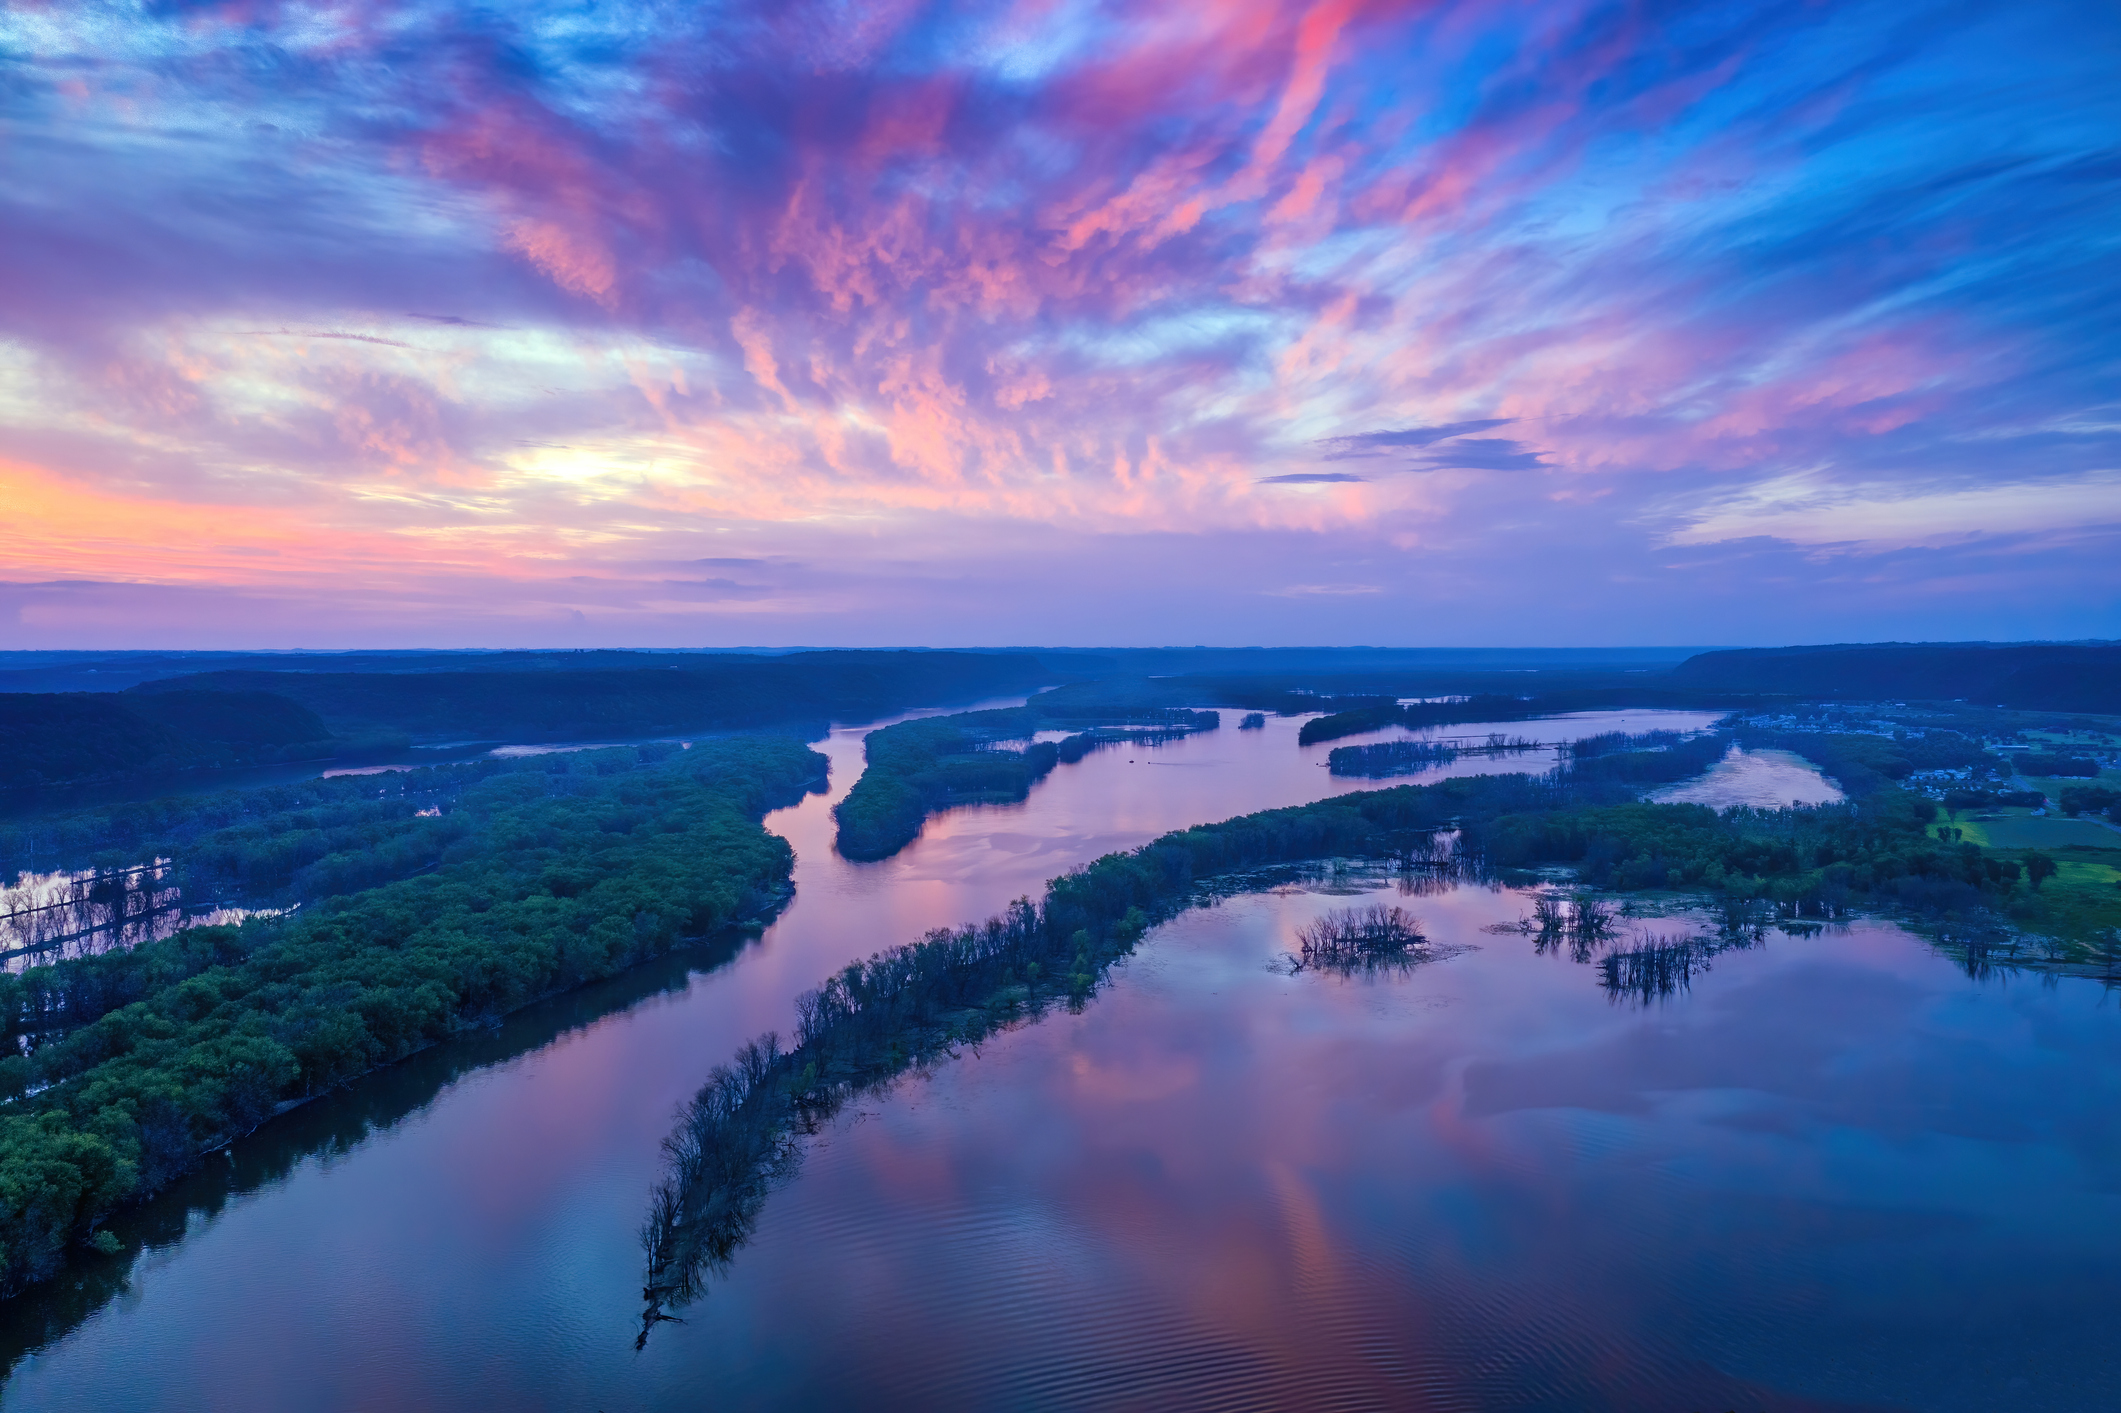 Aerial view of reflections of sunset over islands in the Mississippj River between Iowa and Wisconsin.